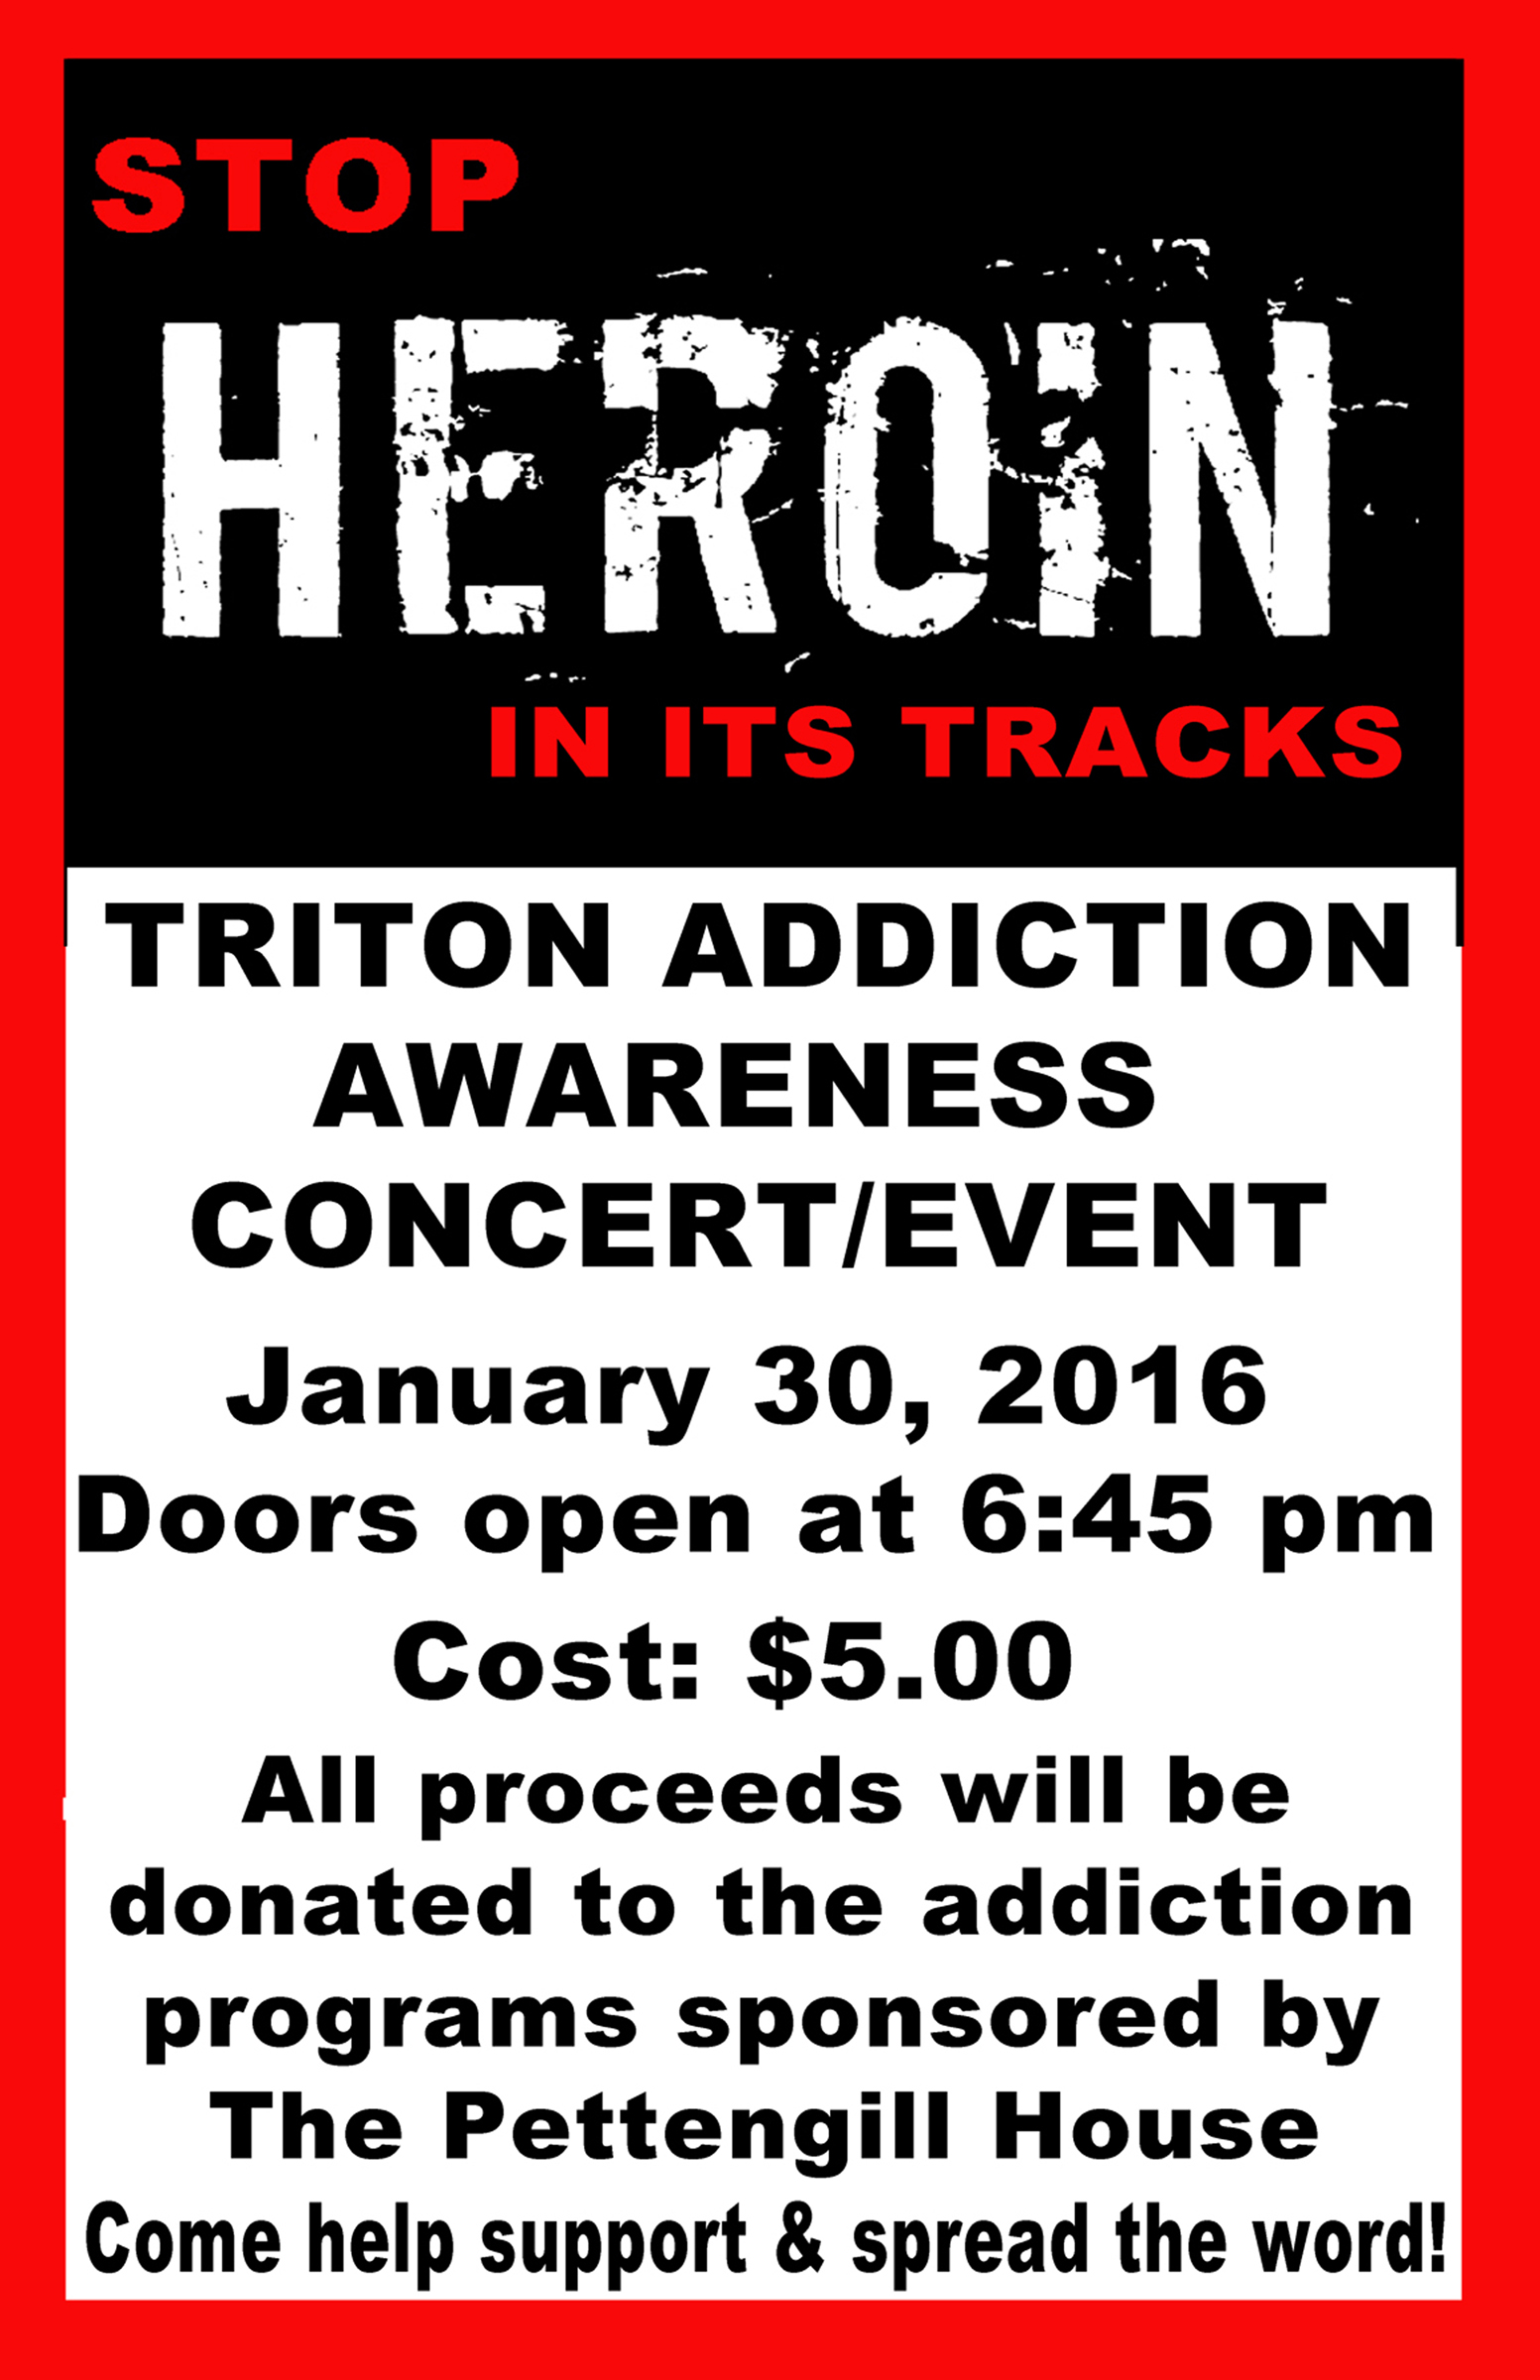 2016 heroin event